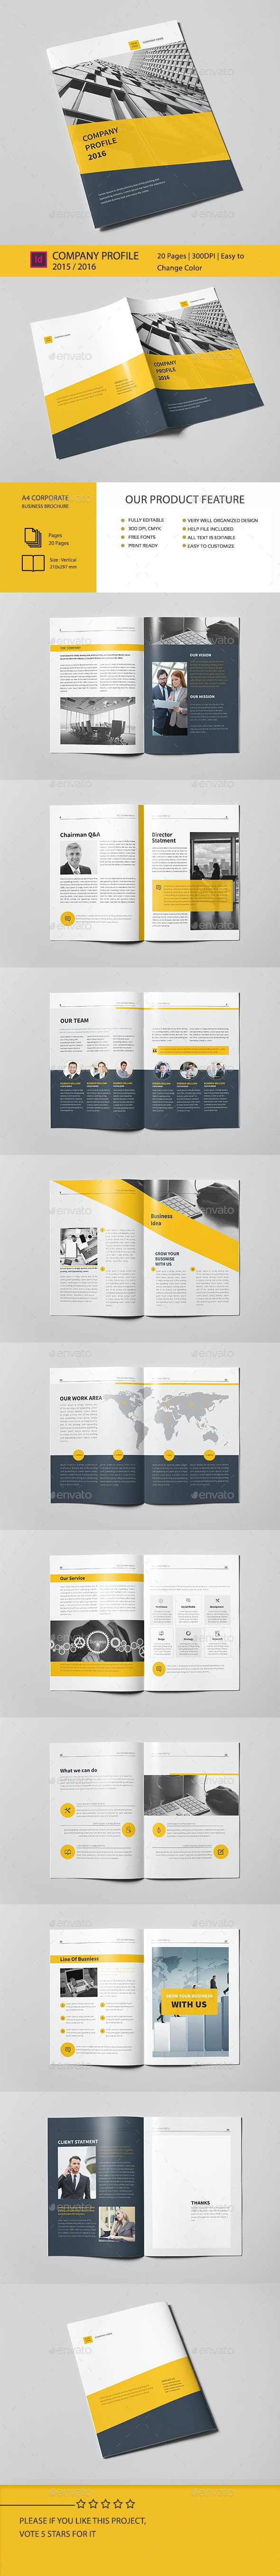 Corporate Business Brochure 20 Pages A4 - Corporate Brochures